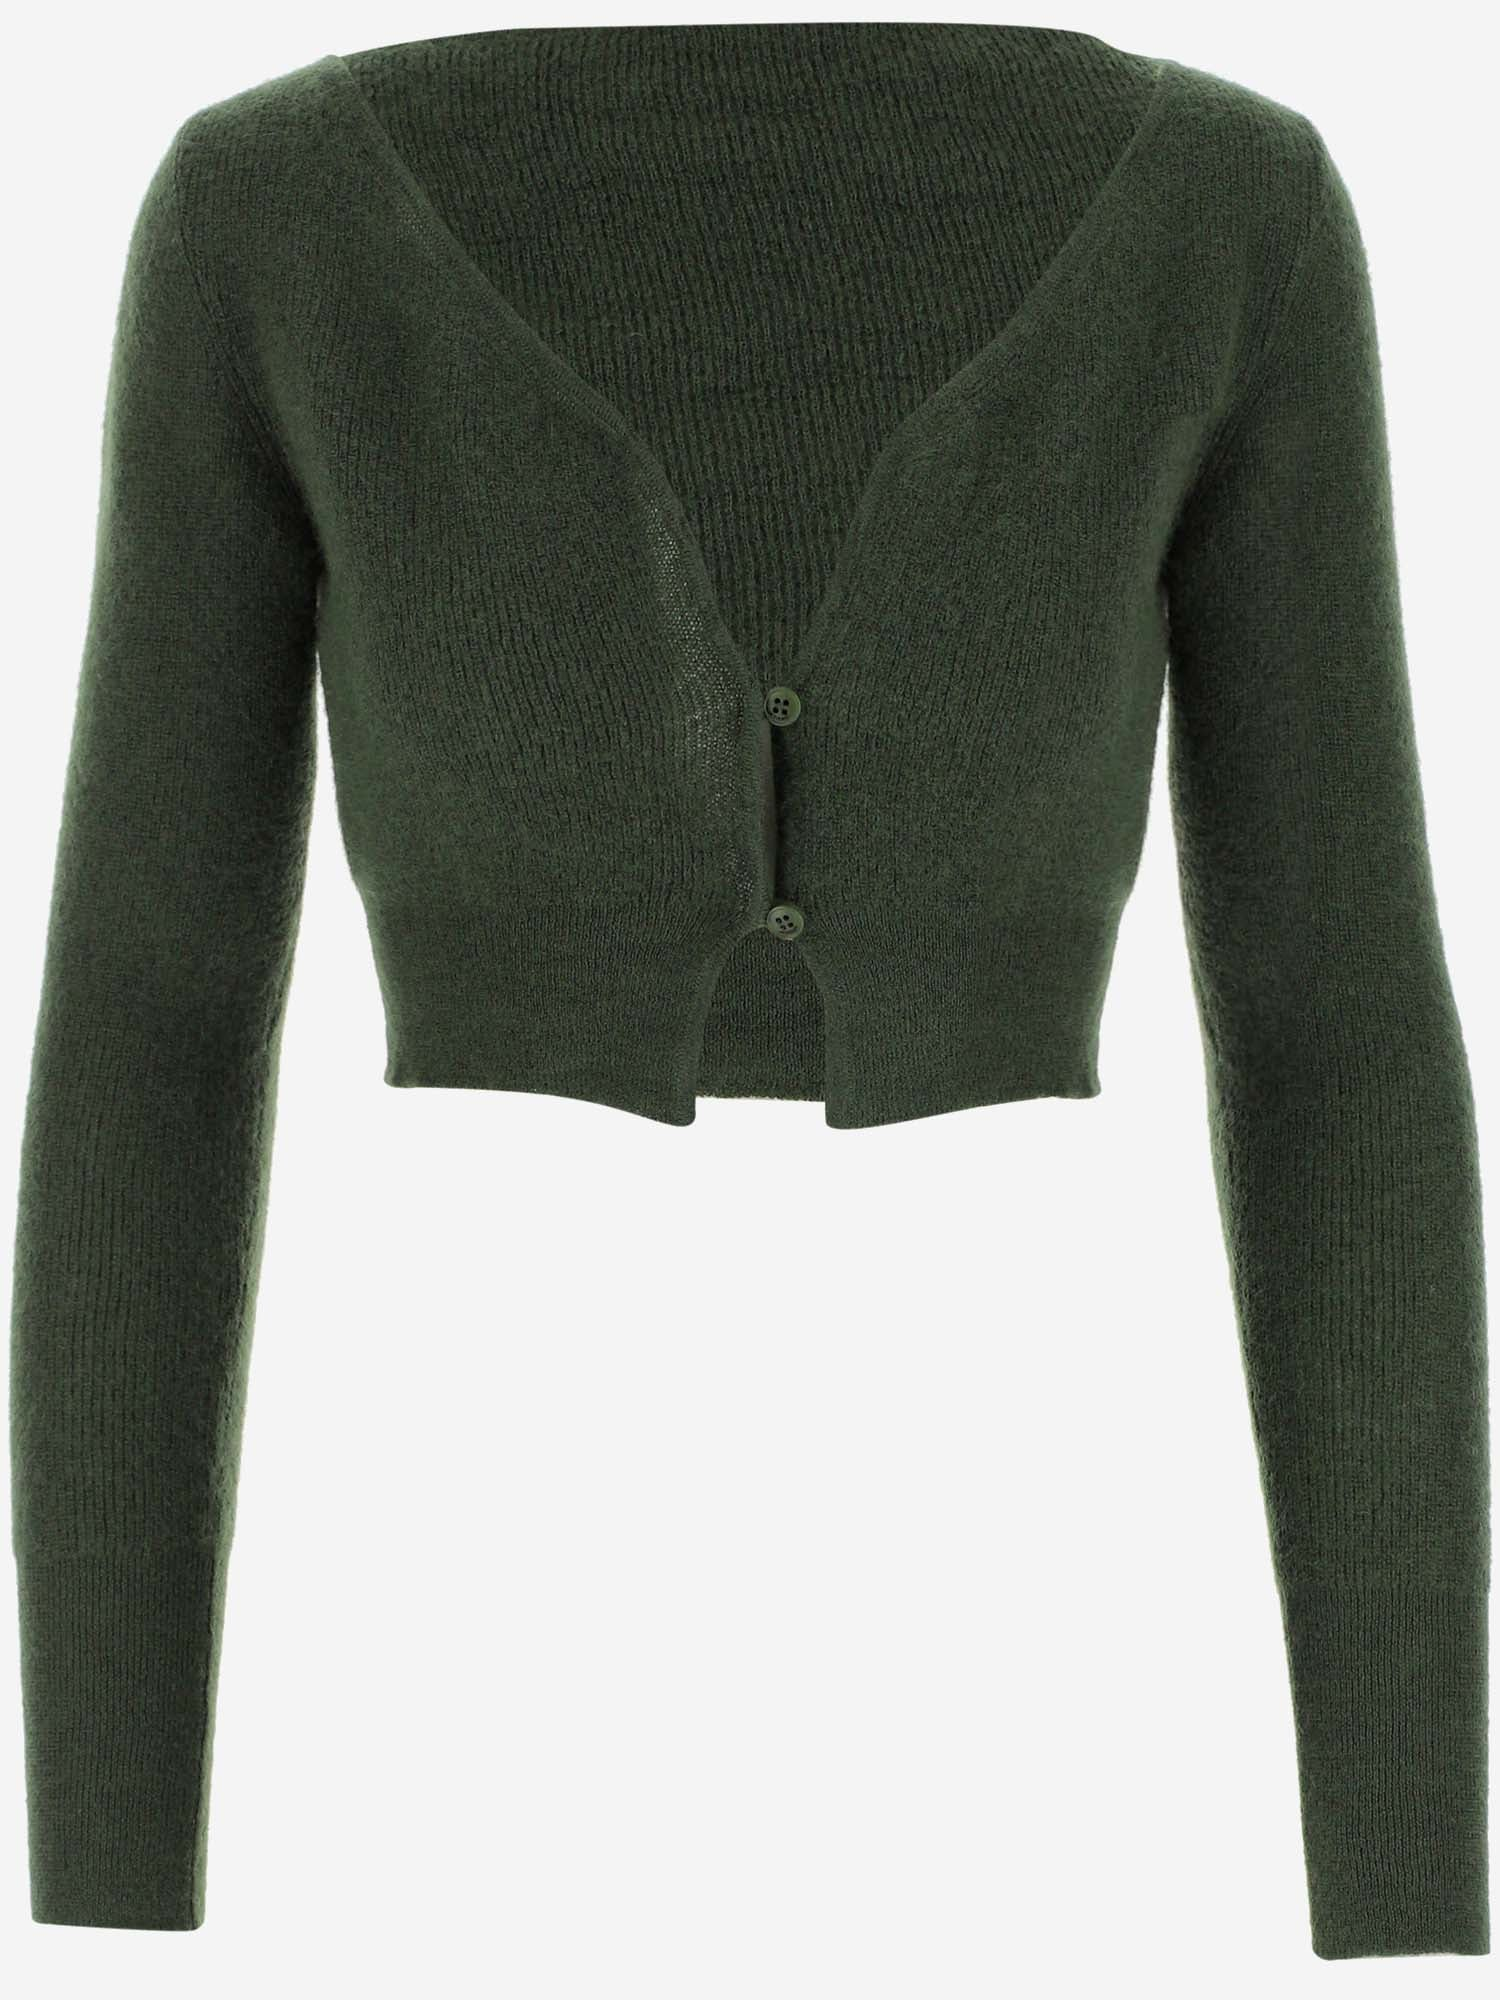 JACQUEMUS JACQUEMUS ALZOU CROPPED KNITTED CARDIGAN